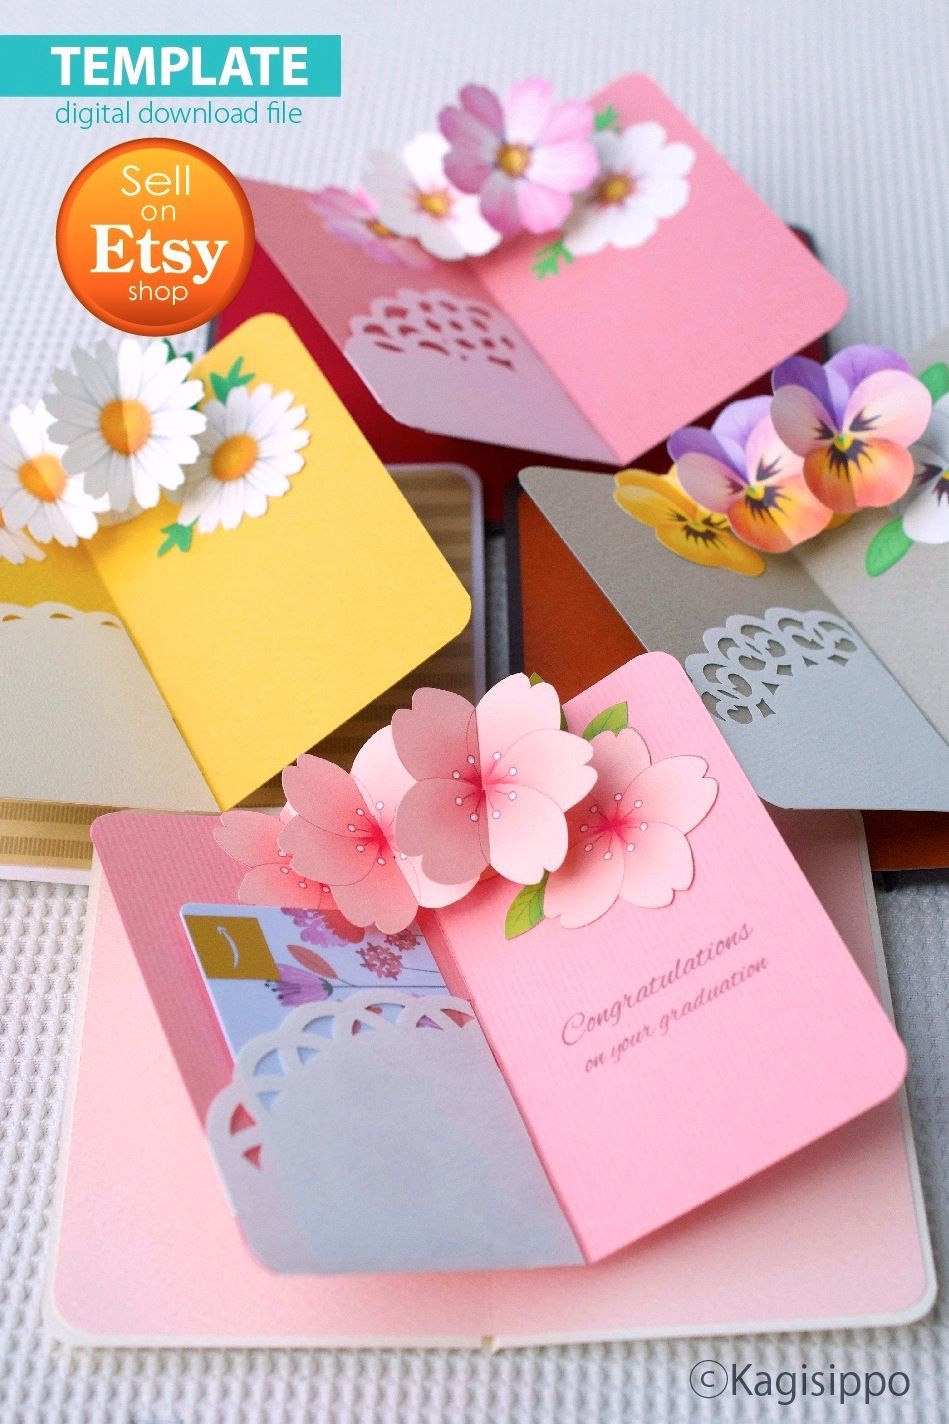 Best 12 Pop Up Cards Skillofking Com Birthday Cards Diy Flower Gift Gift Card Holder